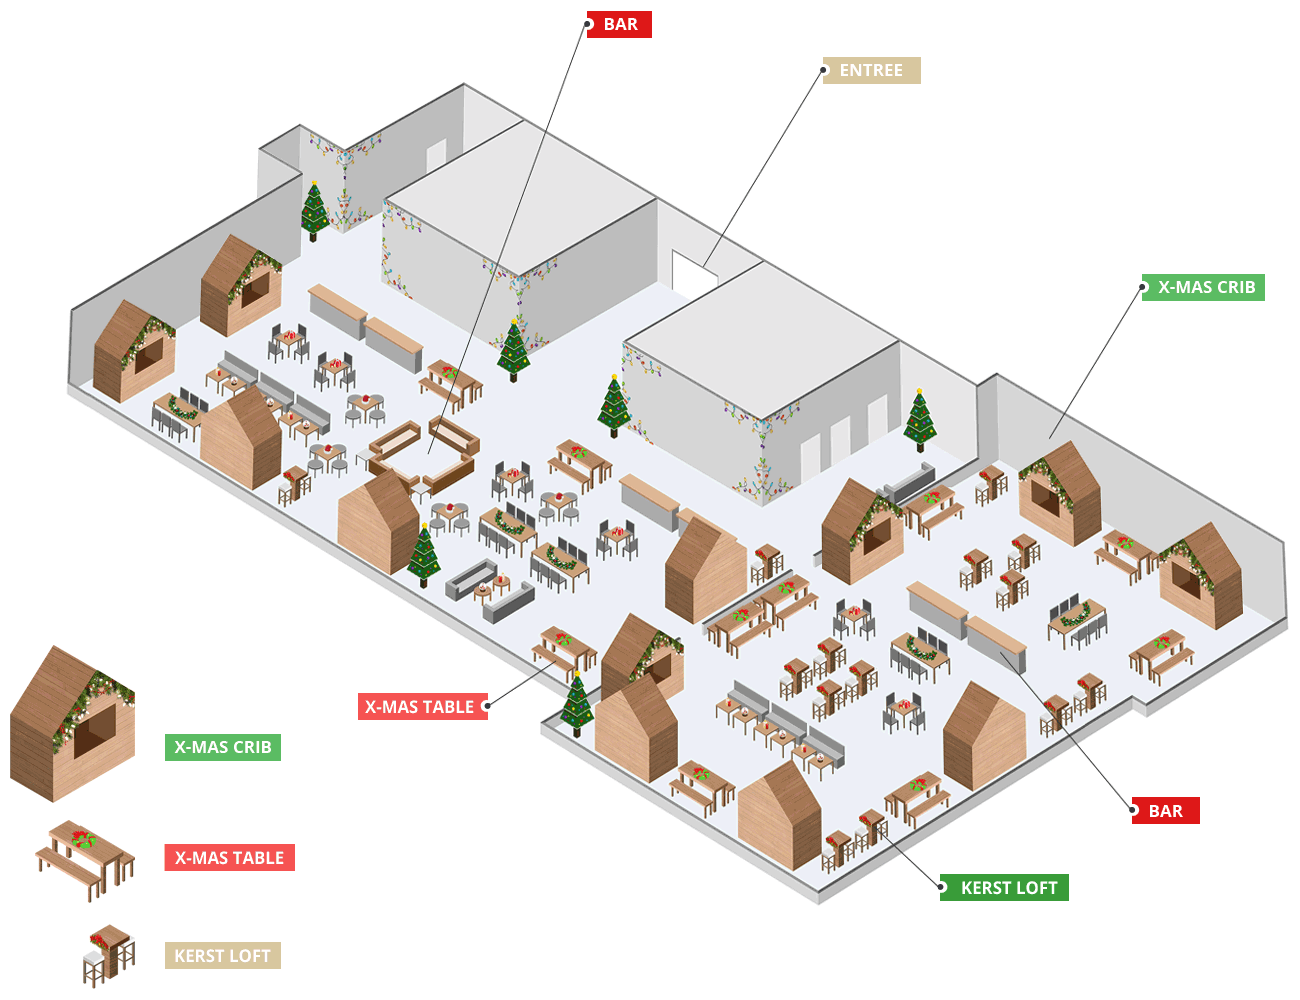 Locatieplattegrond met kerstlofts, x-mas cribs en x-mas tables